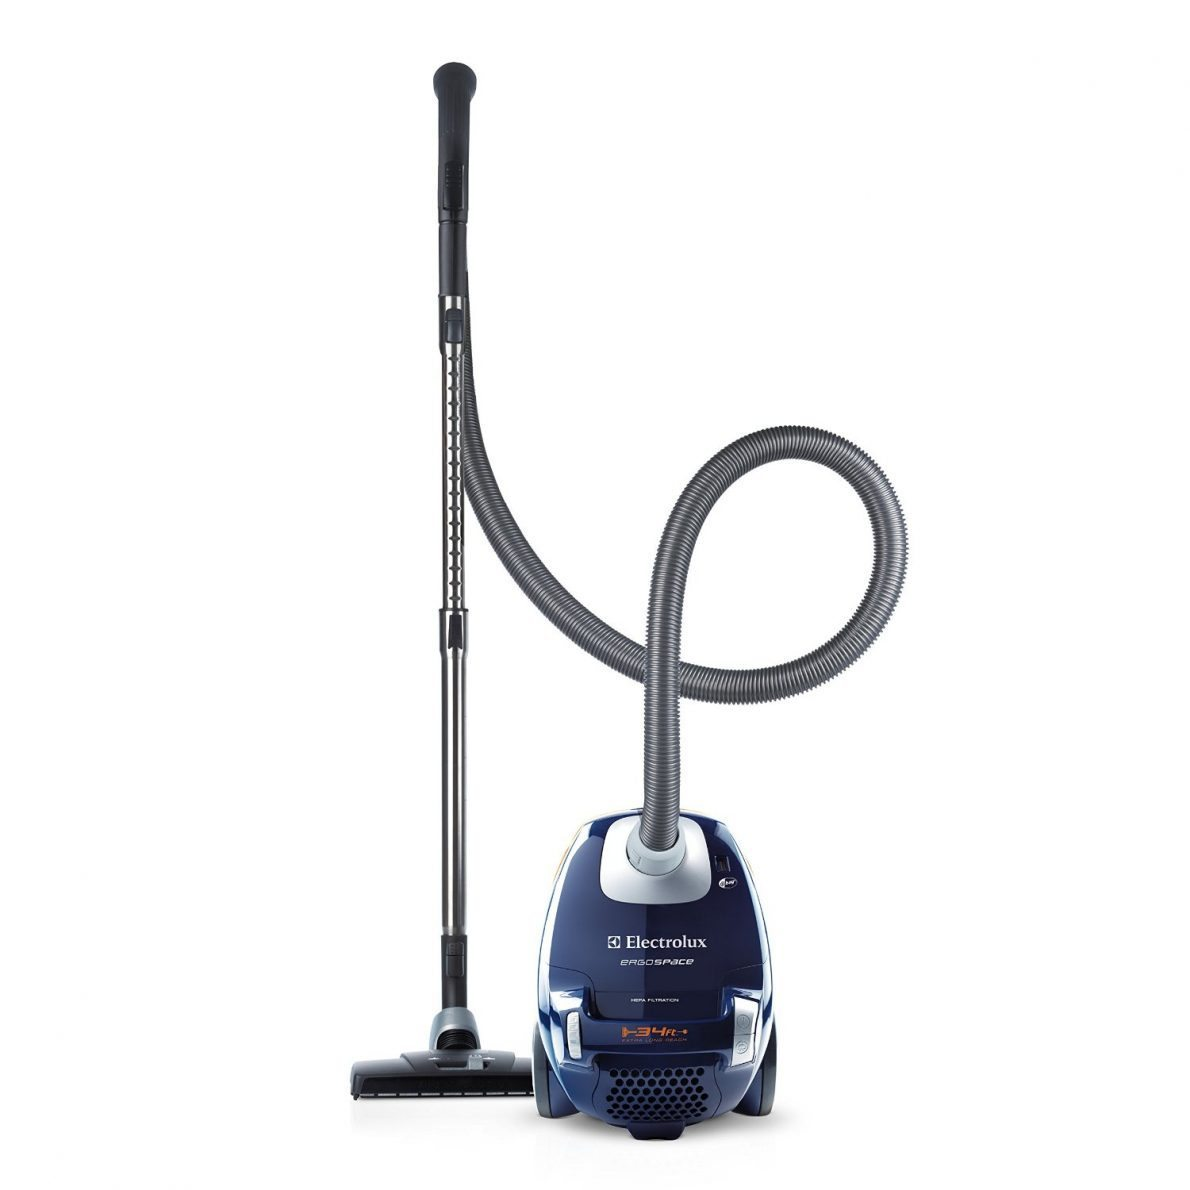 Electrolux Ergospace Bagged Canister Vacuum, EL4103A Review